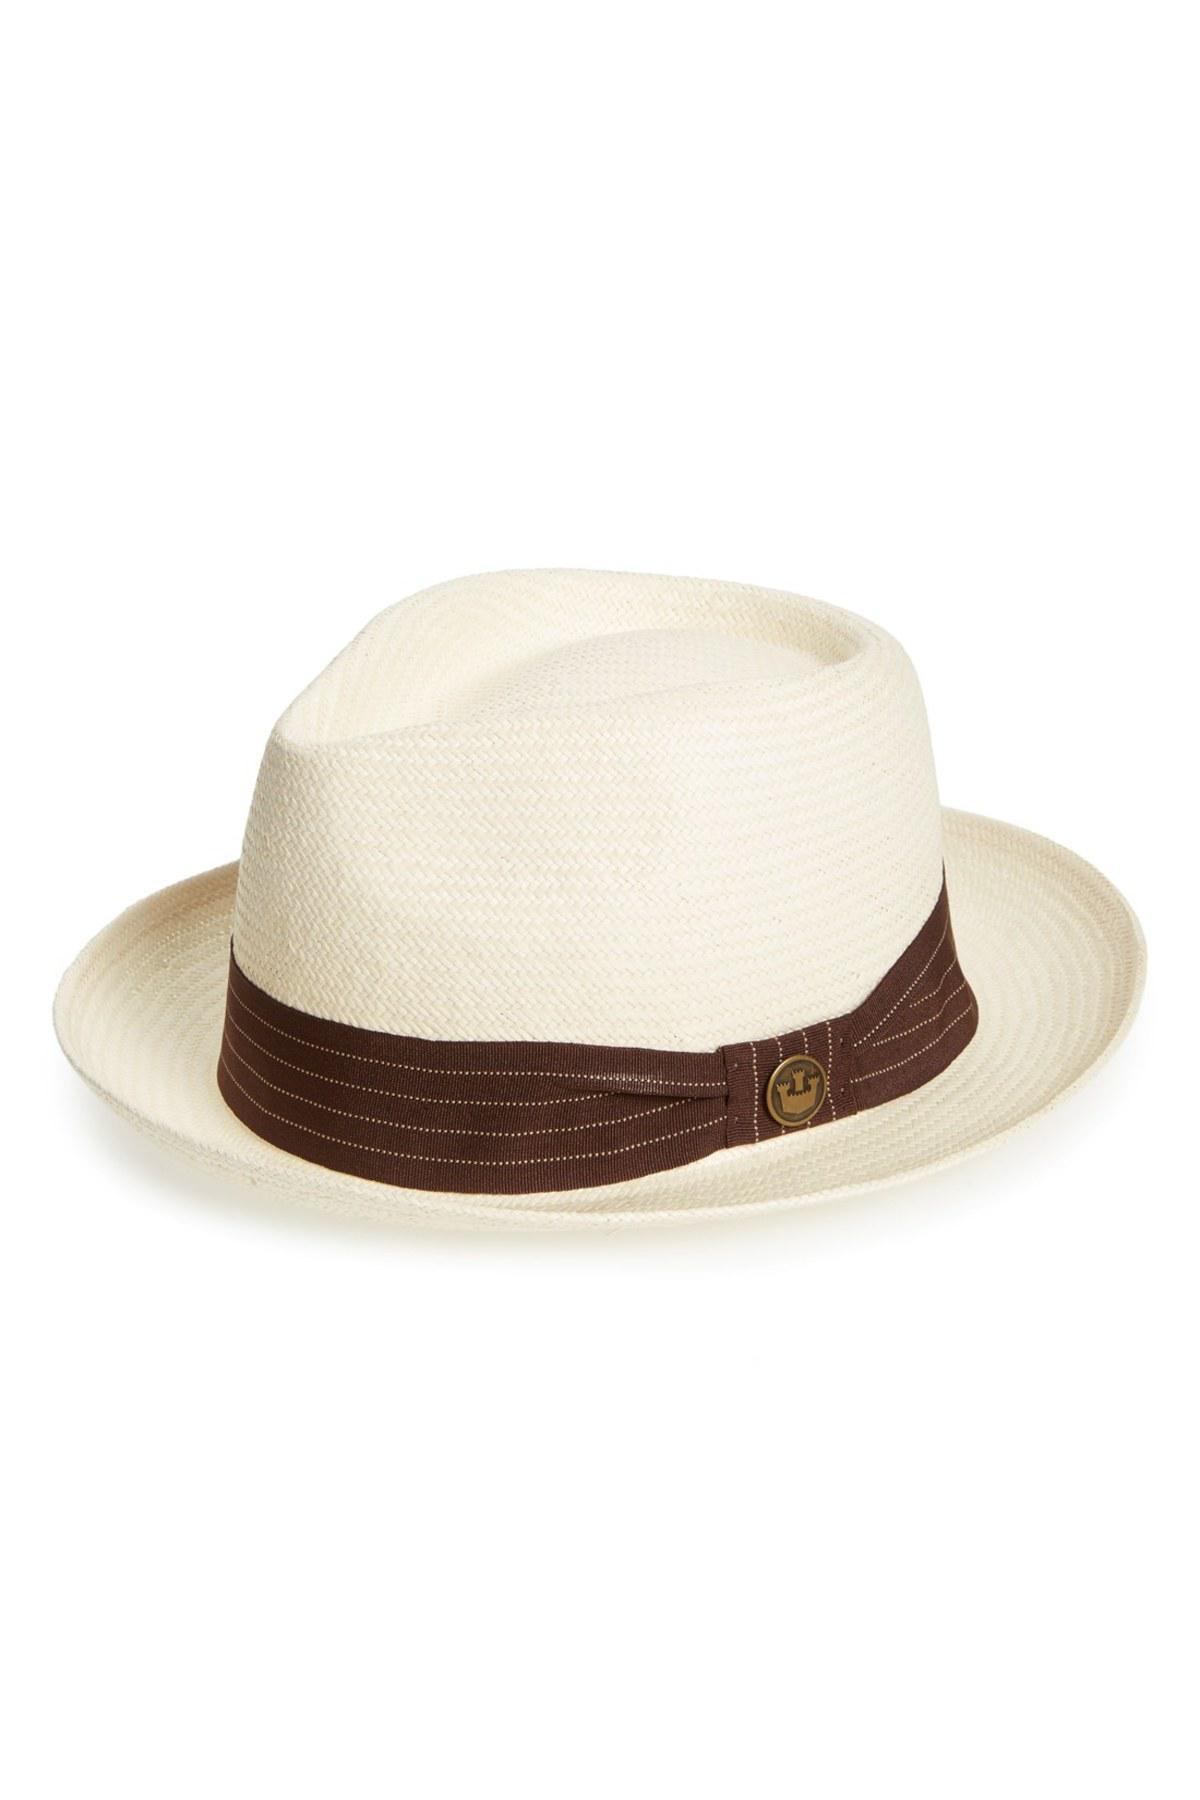 Lyst - Goorin Bros Snare Straw Fedora in White for Men f8a99f405121